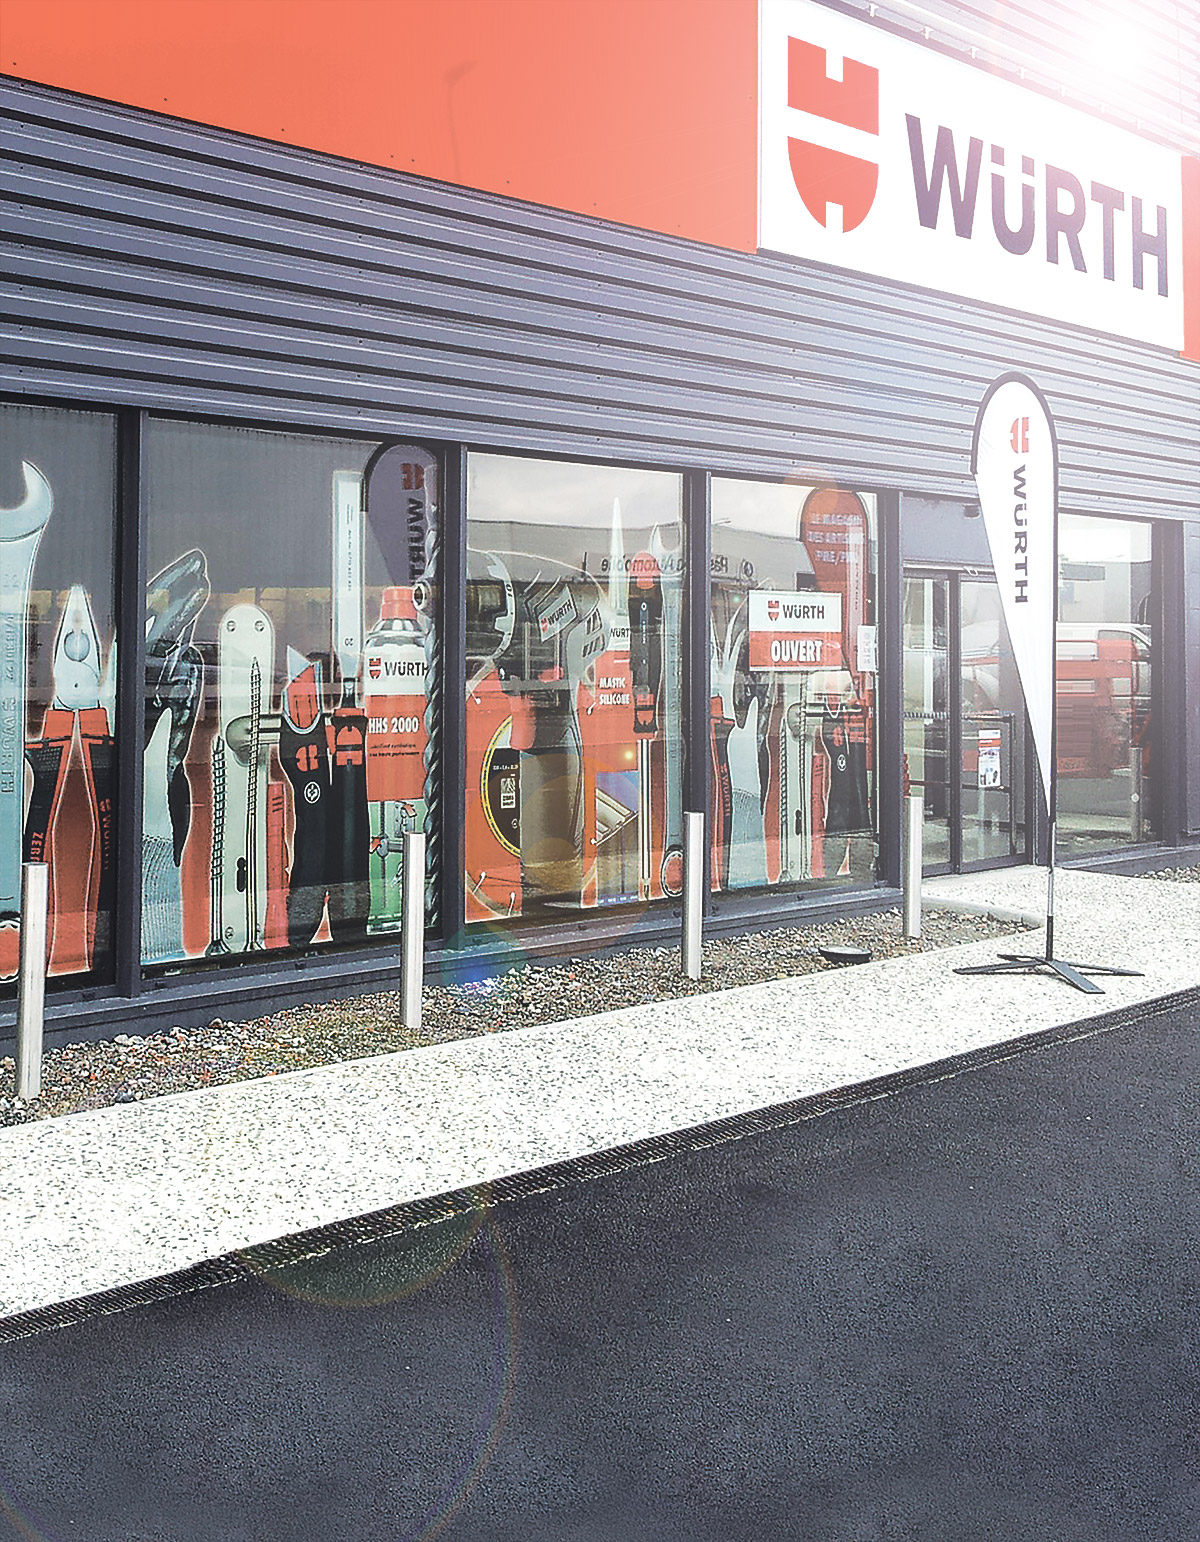 magasin wurth modyf France